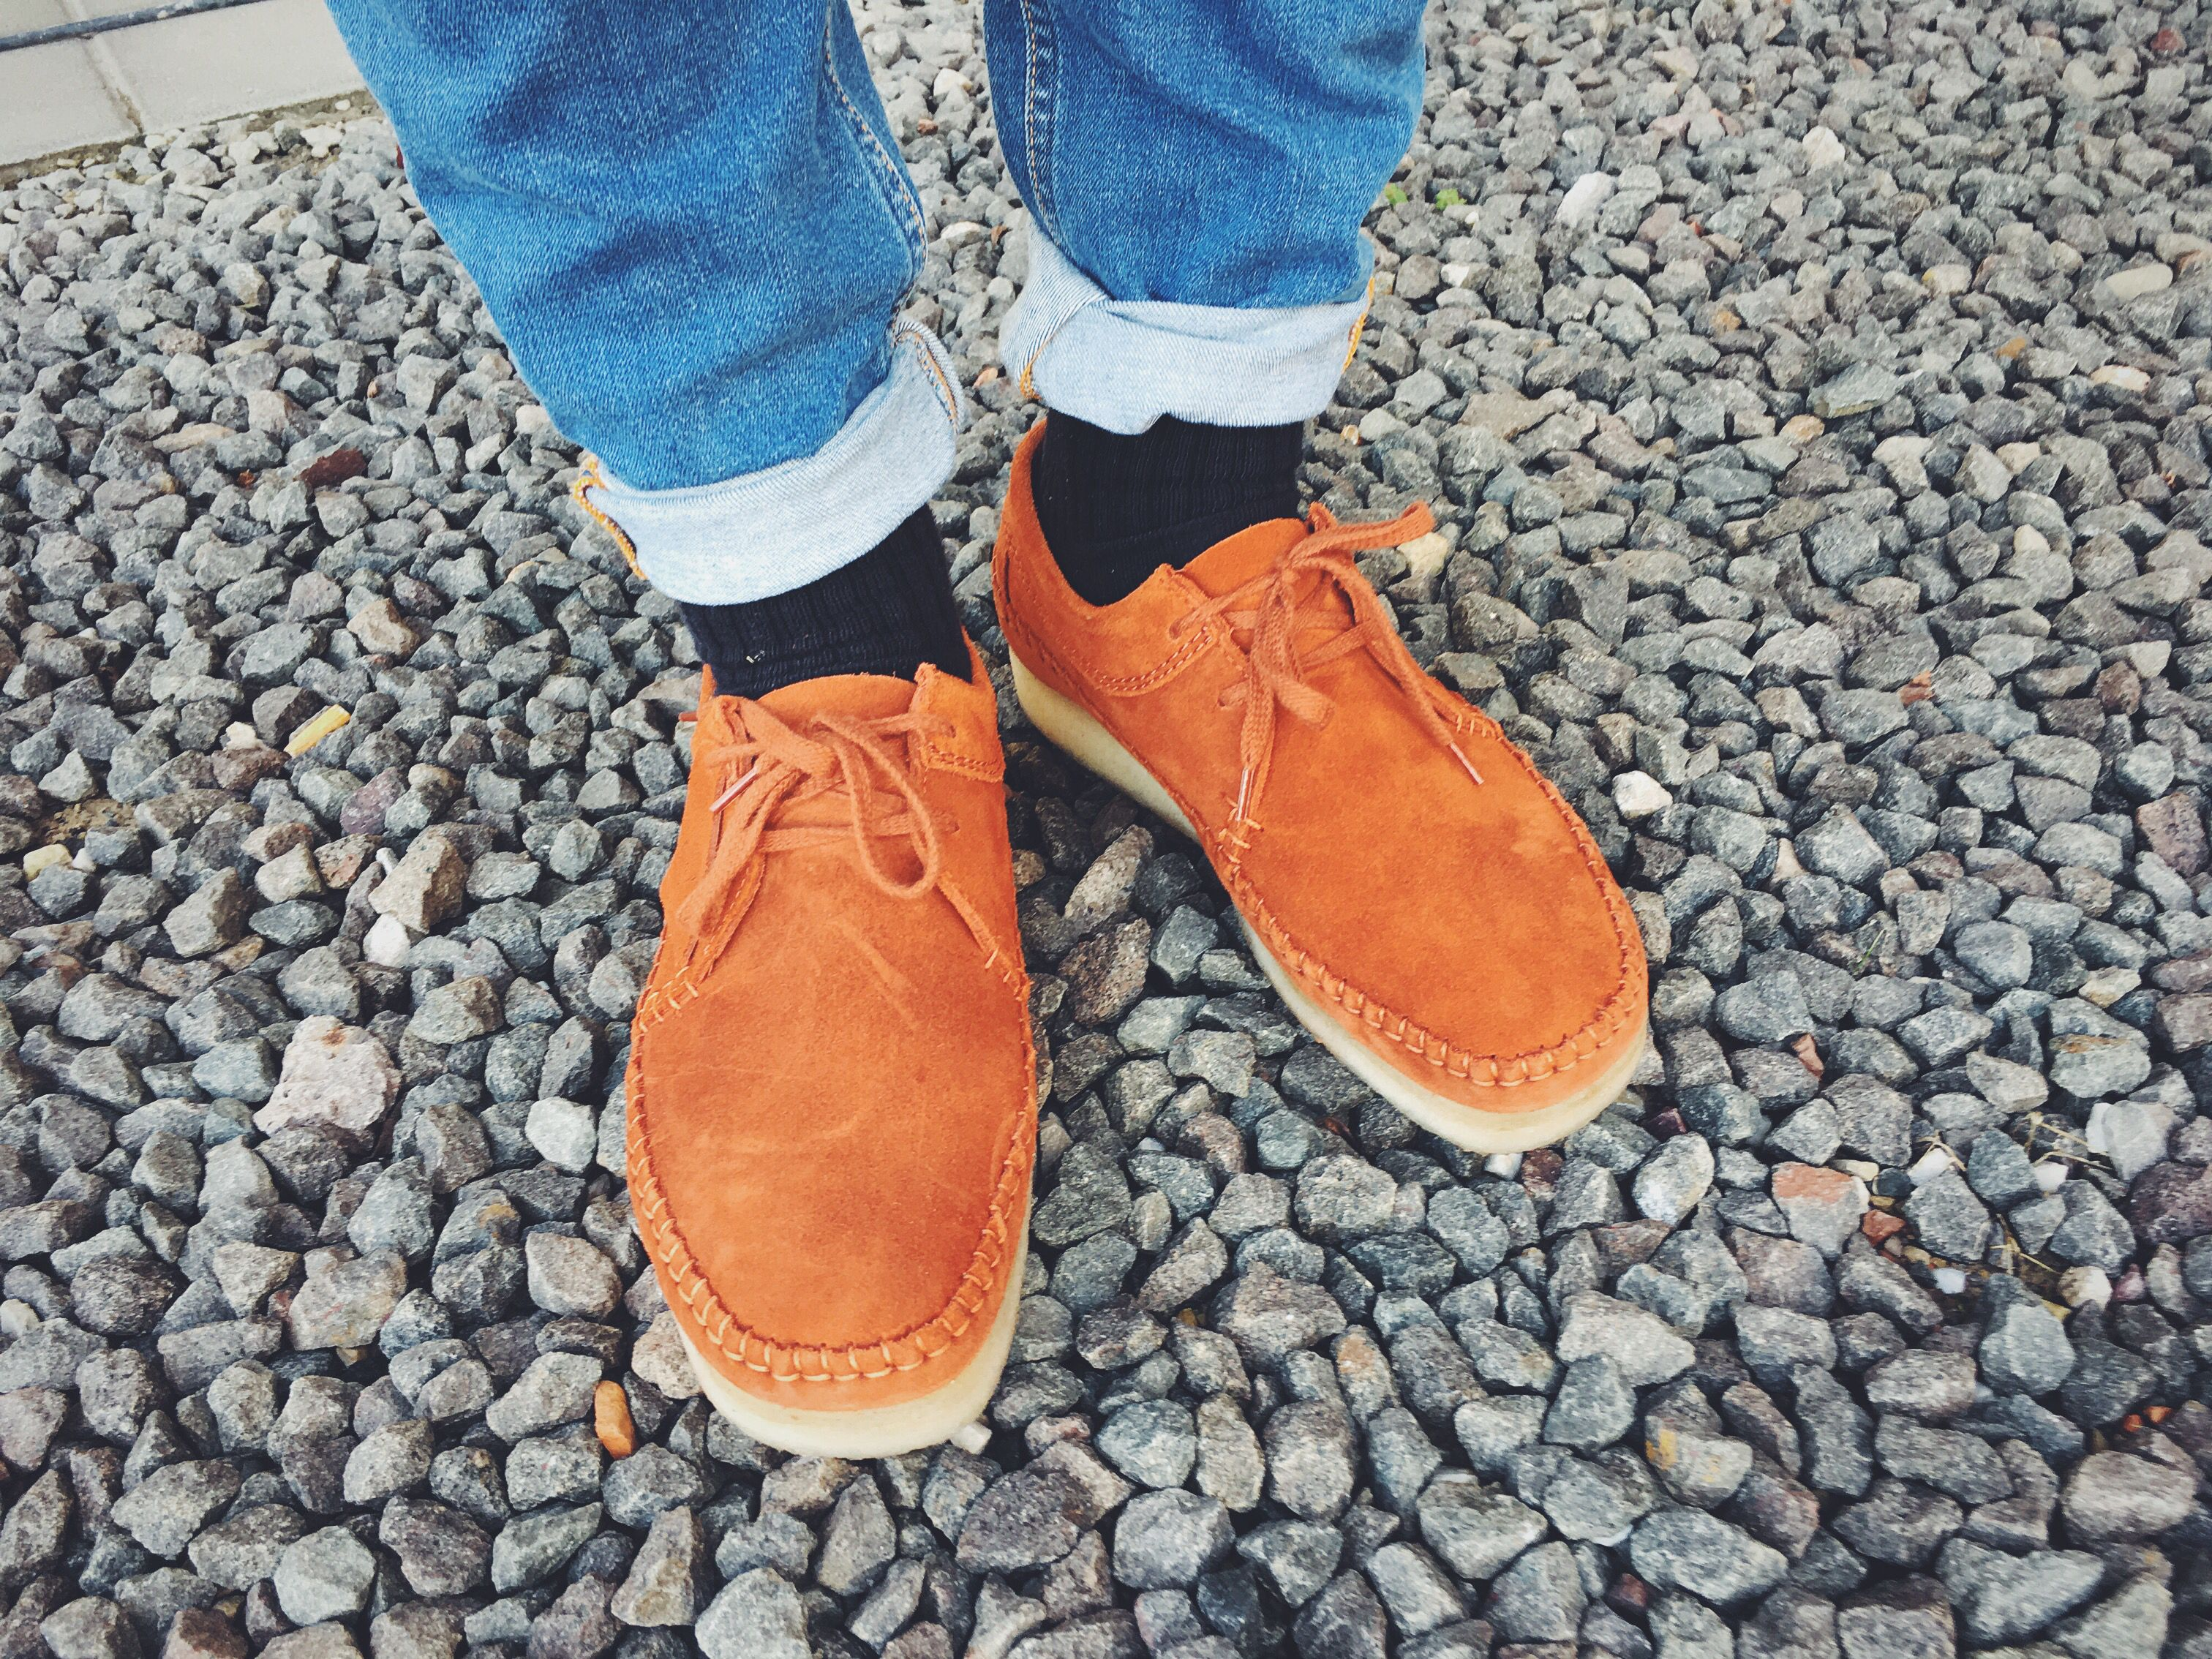 7136a0ad586 Clarks Wallabee Weaver Rust low on feet | Wallabees | Clarks ...